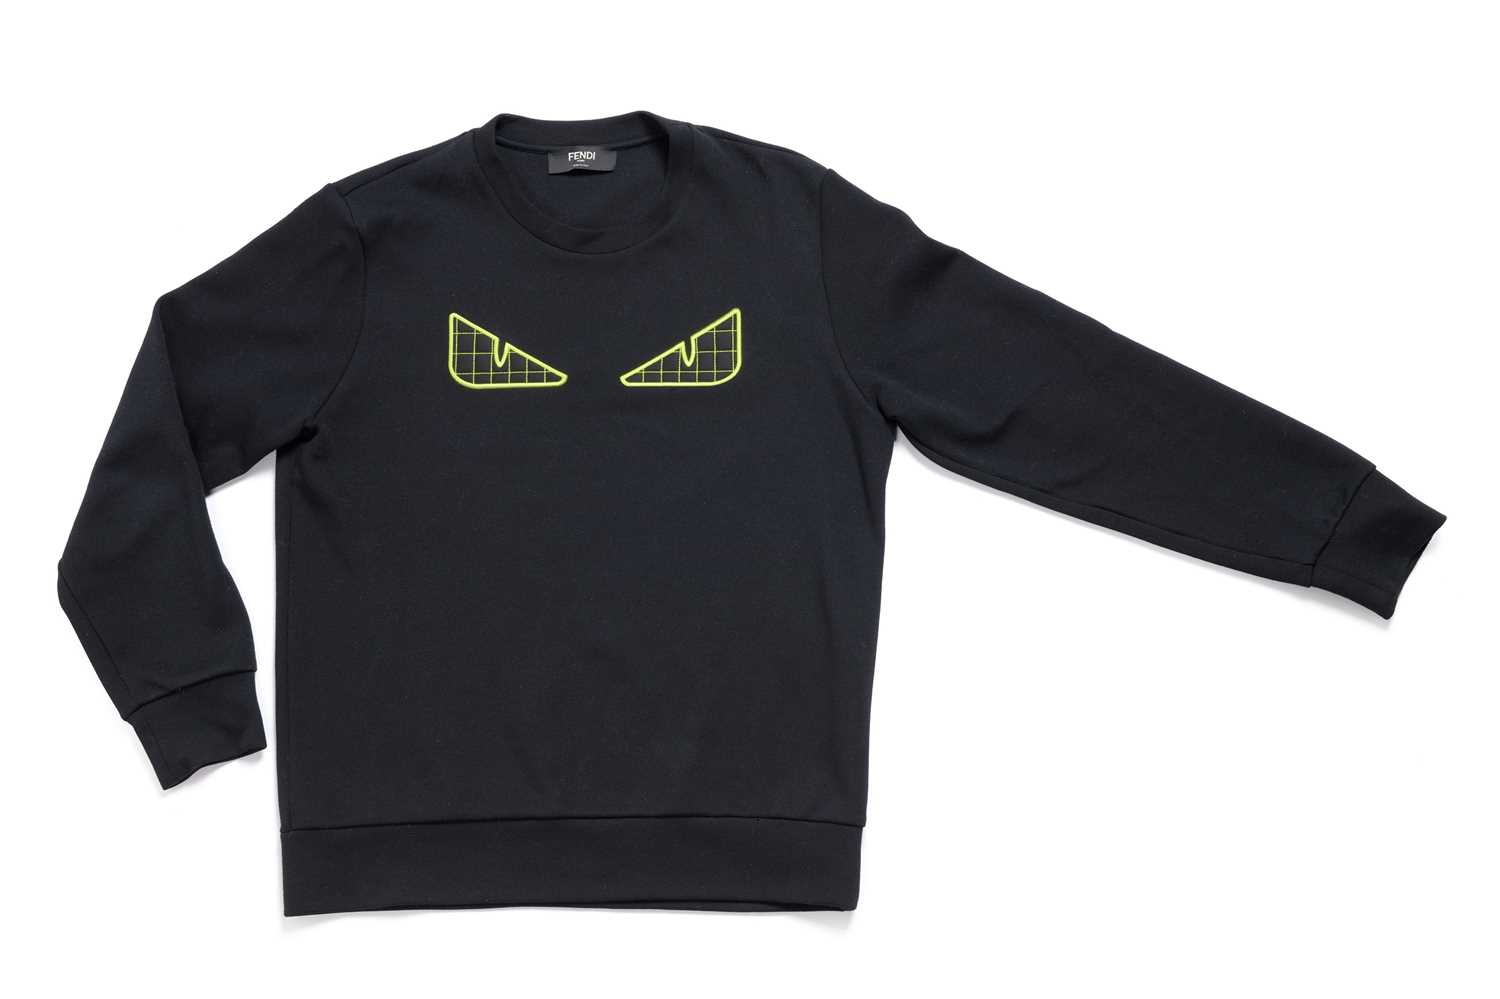 Ed Sheeran's Fendi Sweatshirt, worn in the Video Shoot with Stormzy for Take Me Back to London